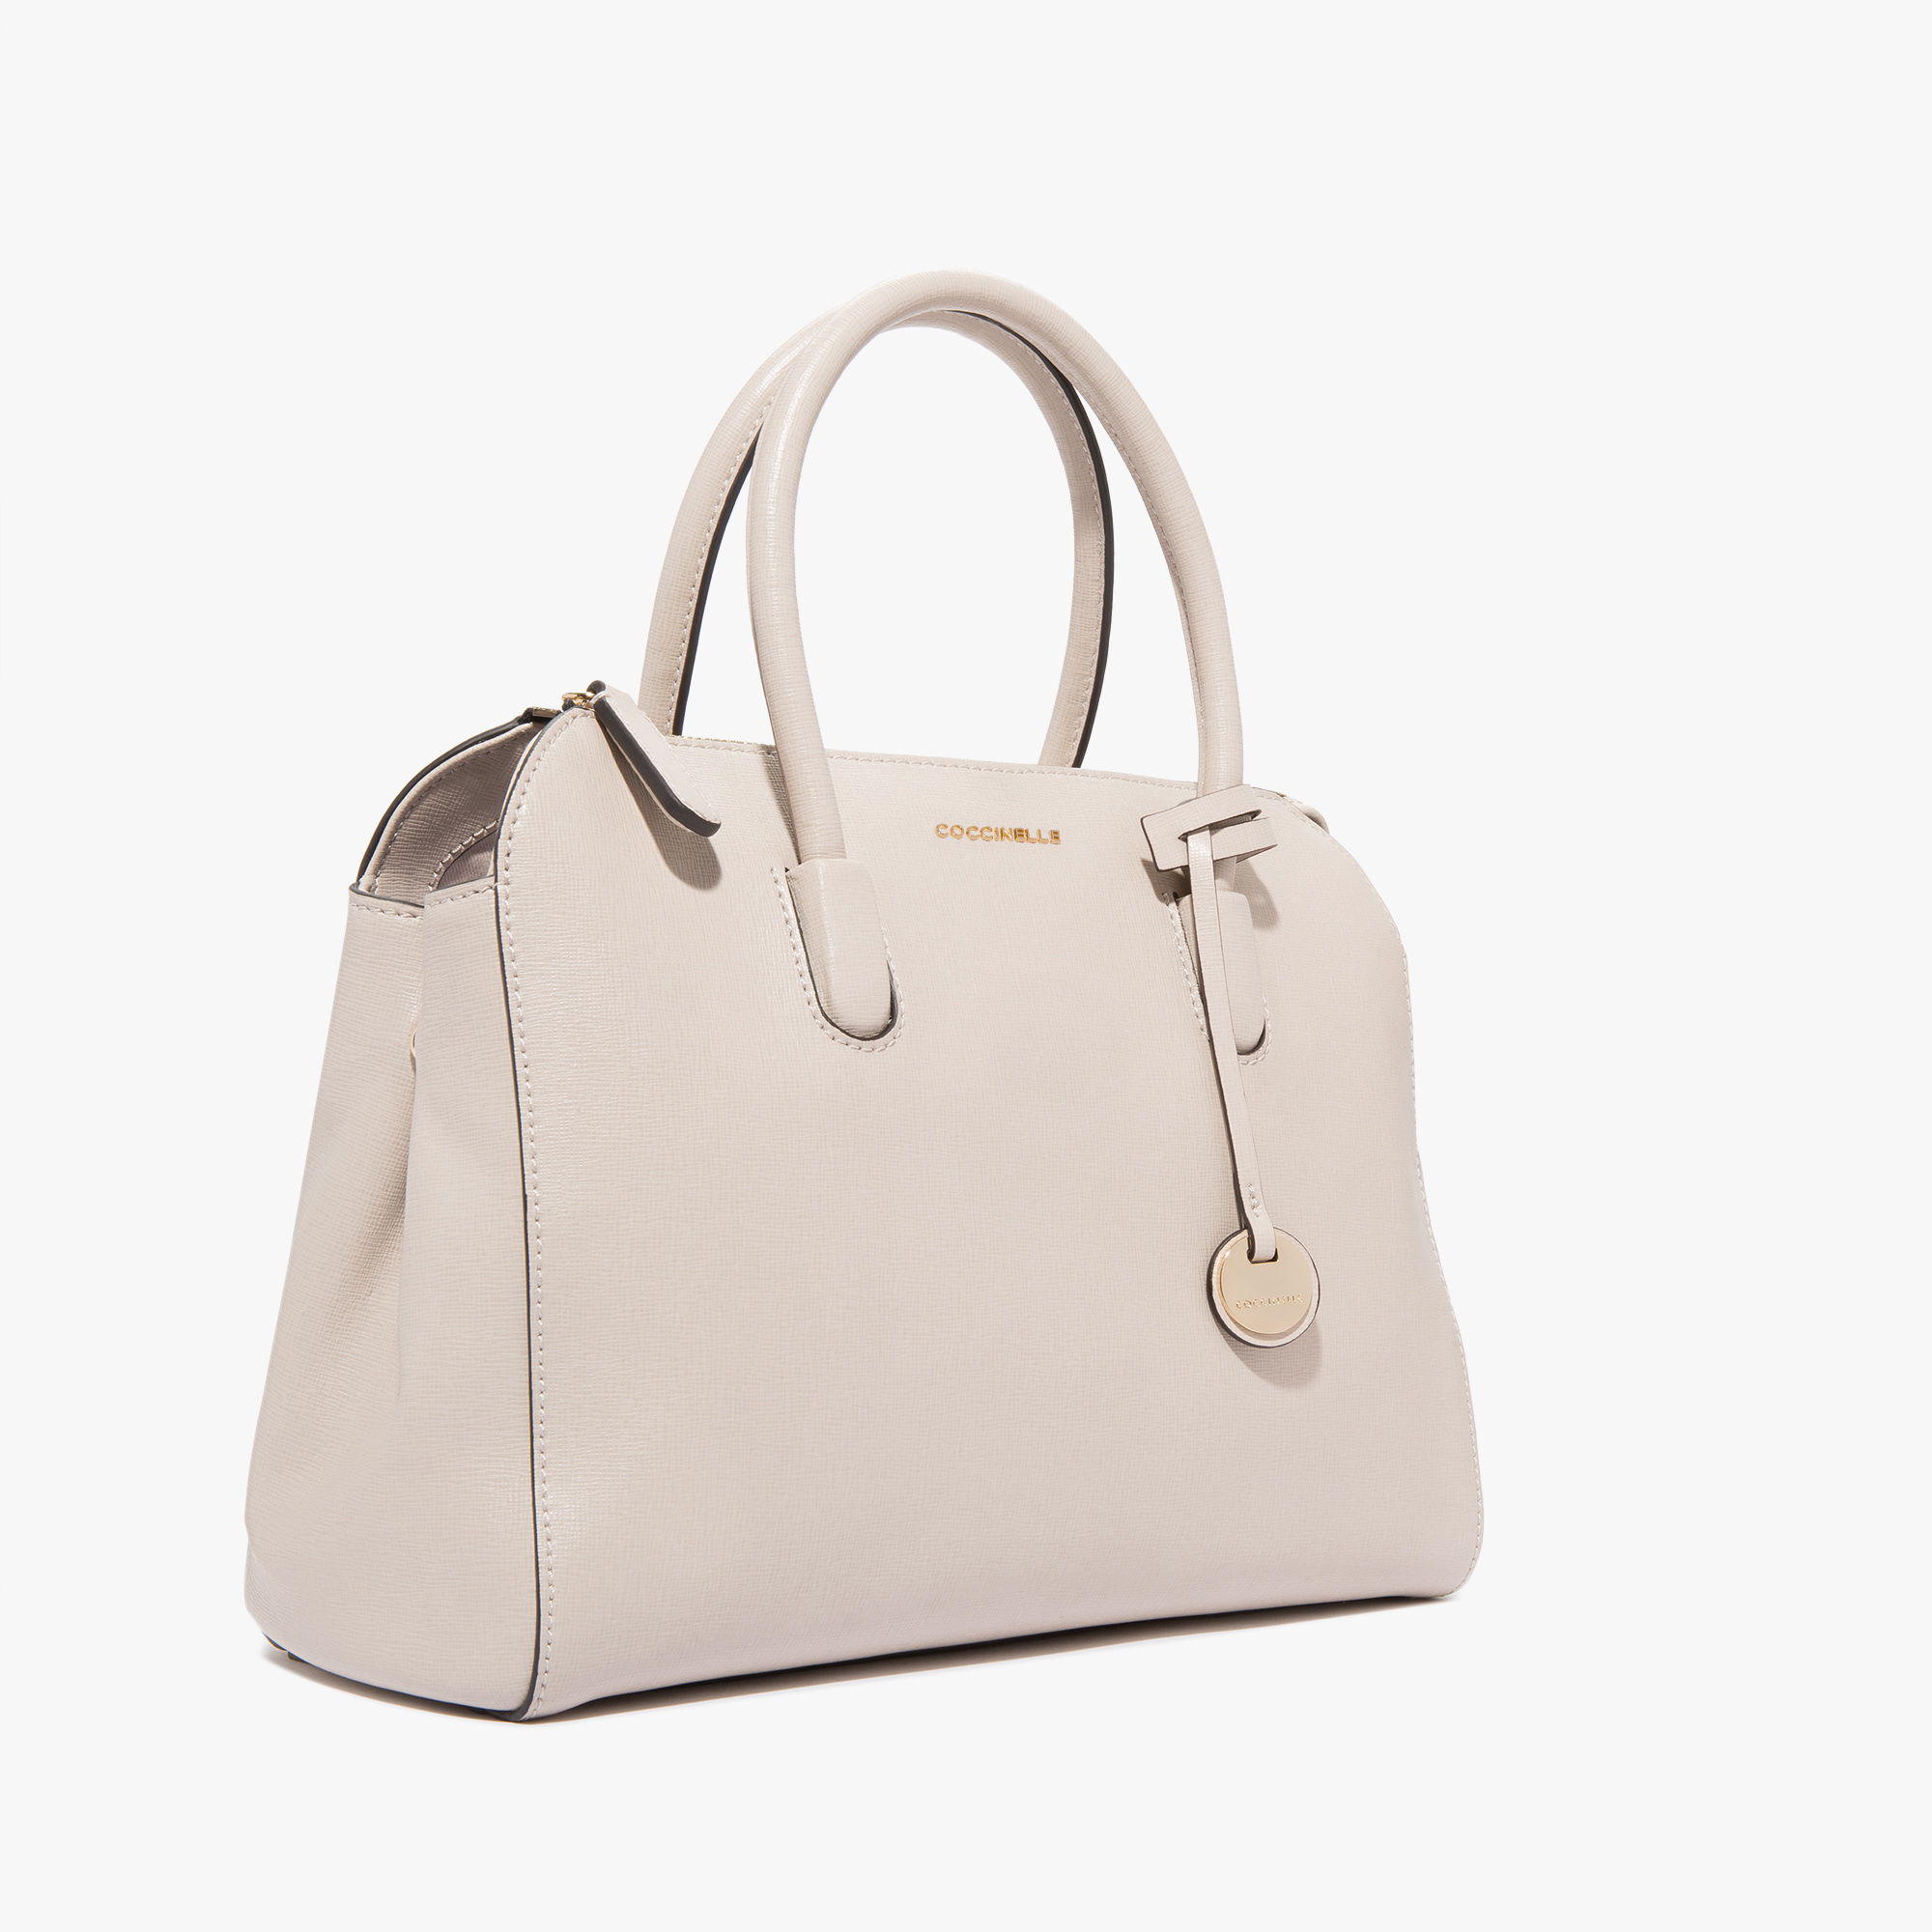 Clementine saffiano leather handbag